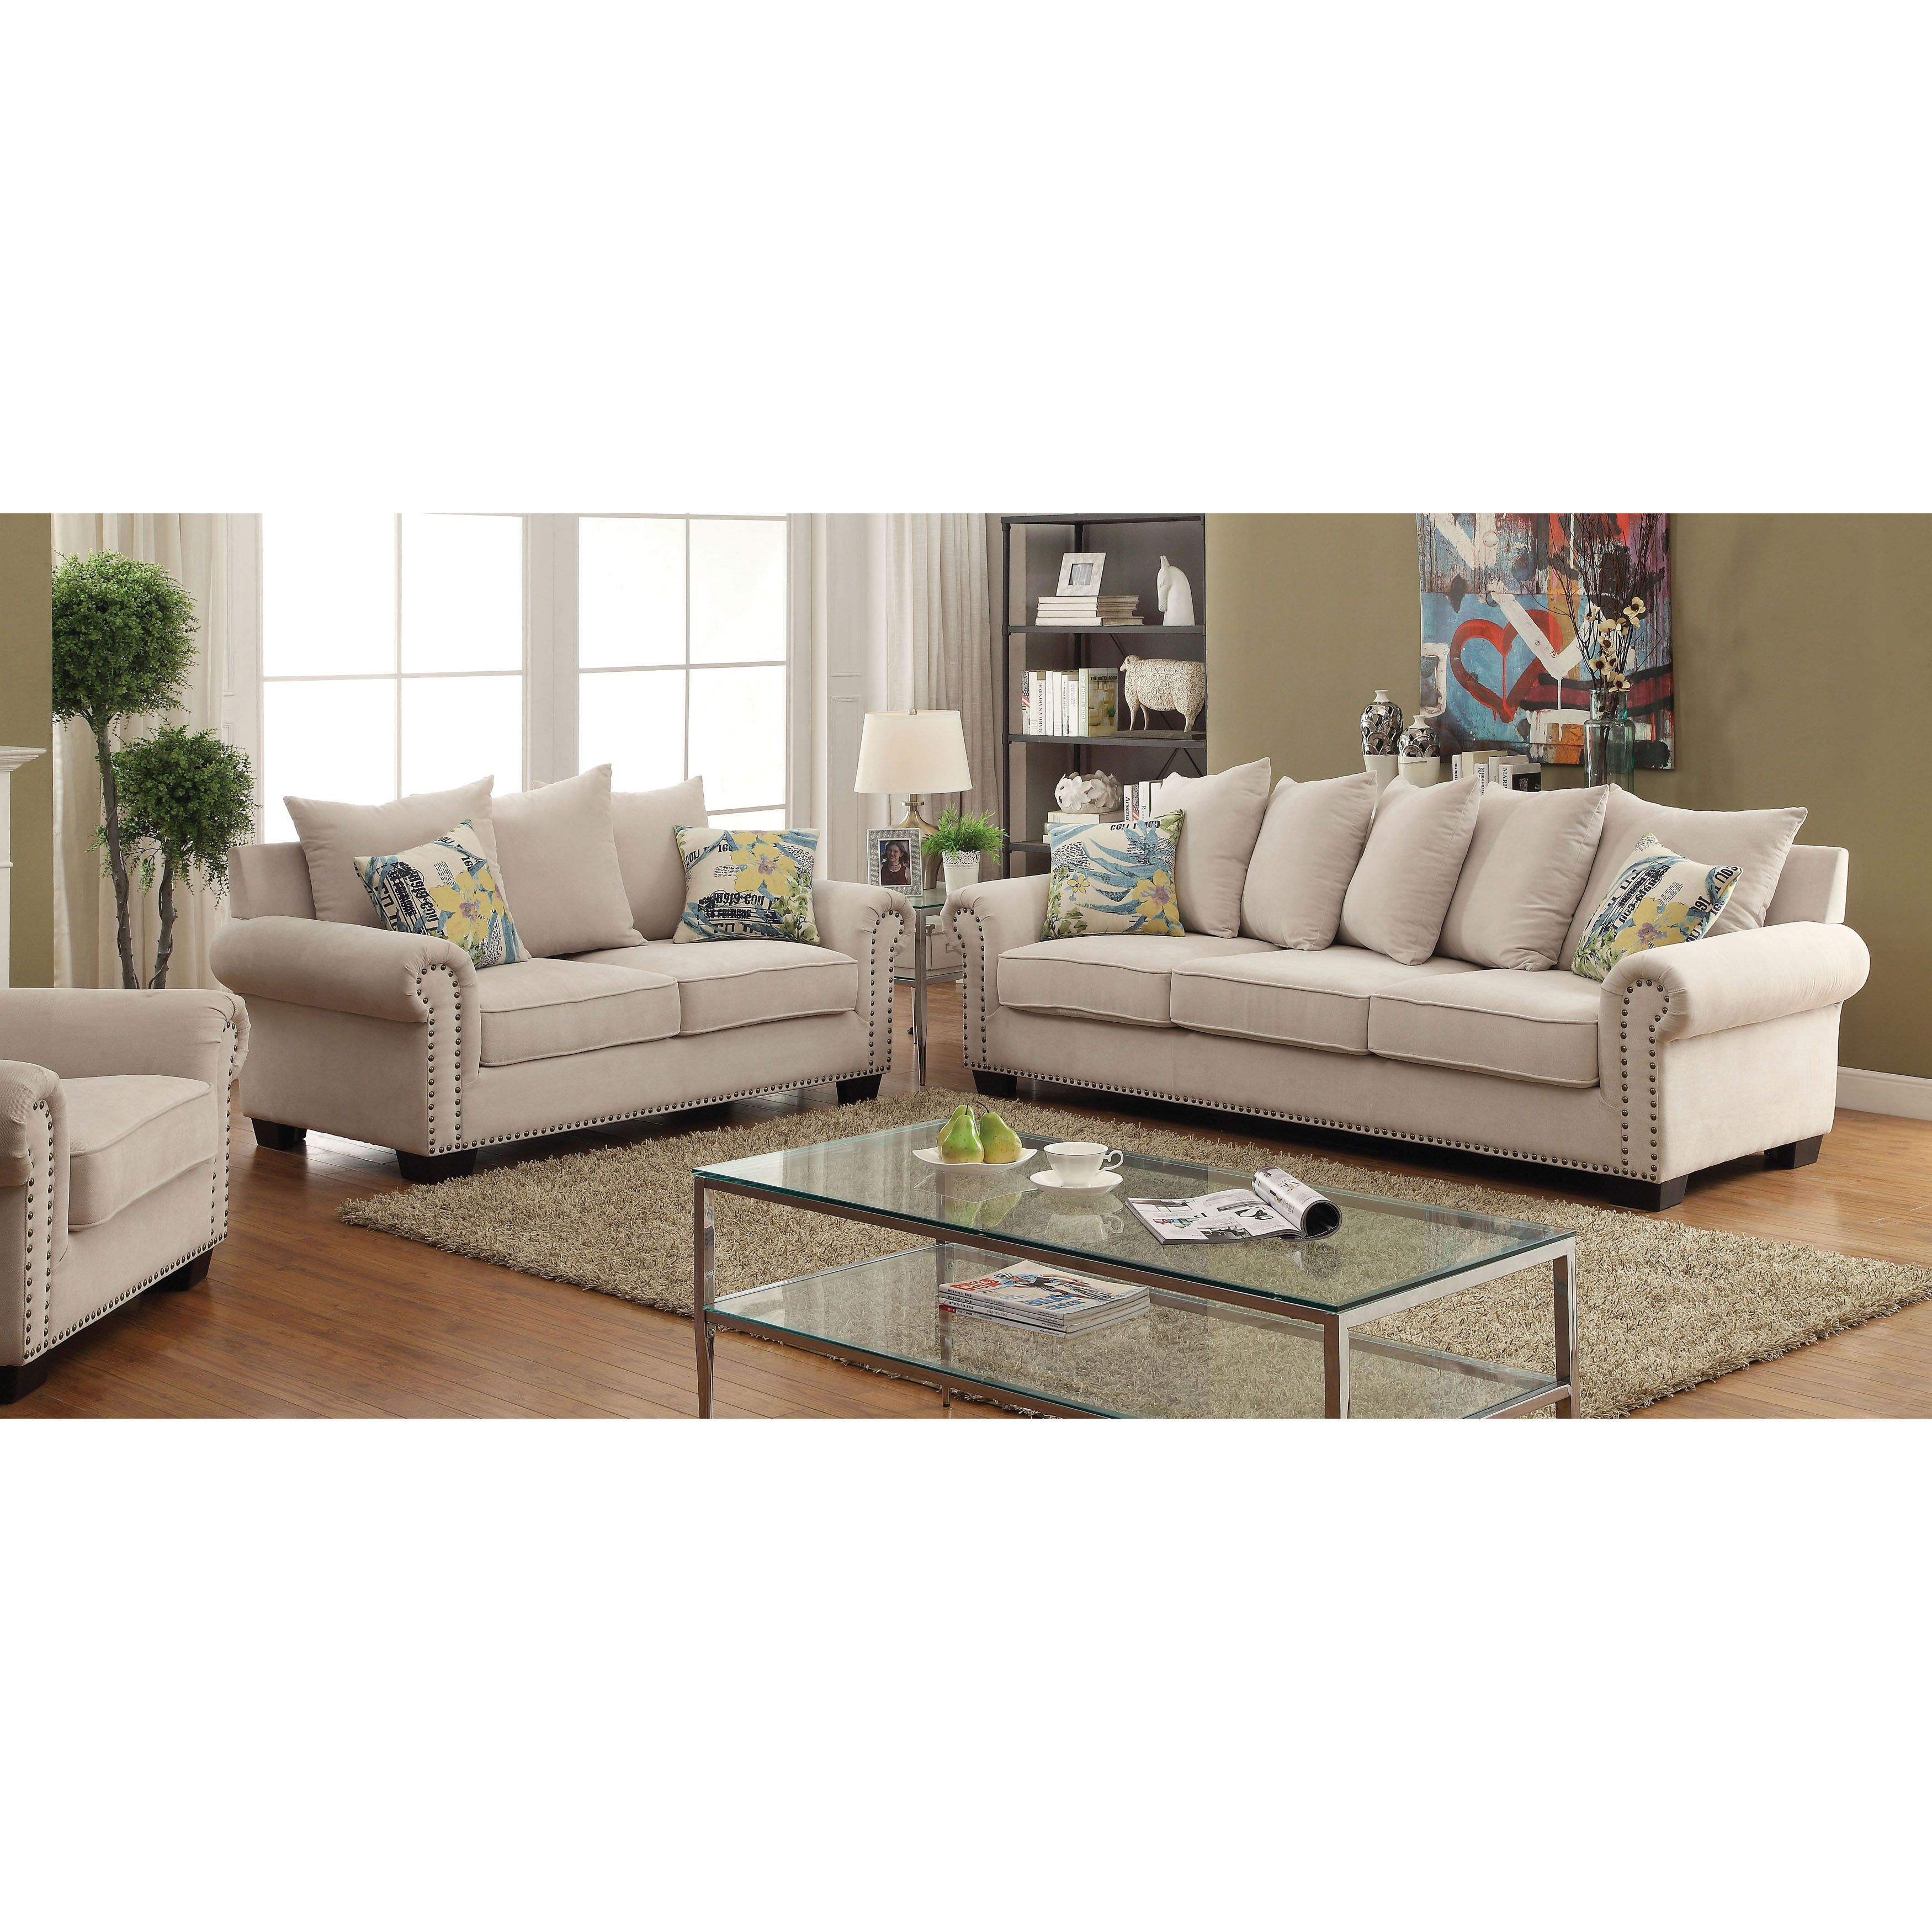 Furniture Of America Casana Transitional 3 Piece Ivory Upholstered Sofa Set Beige Off White